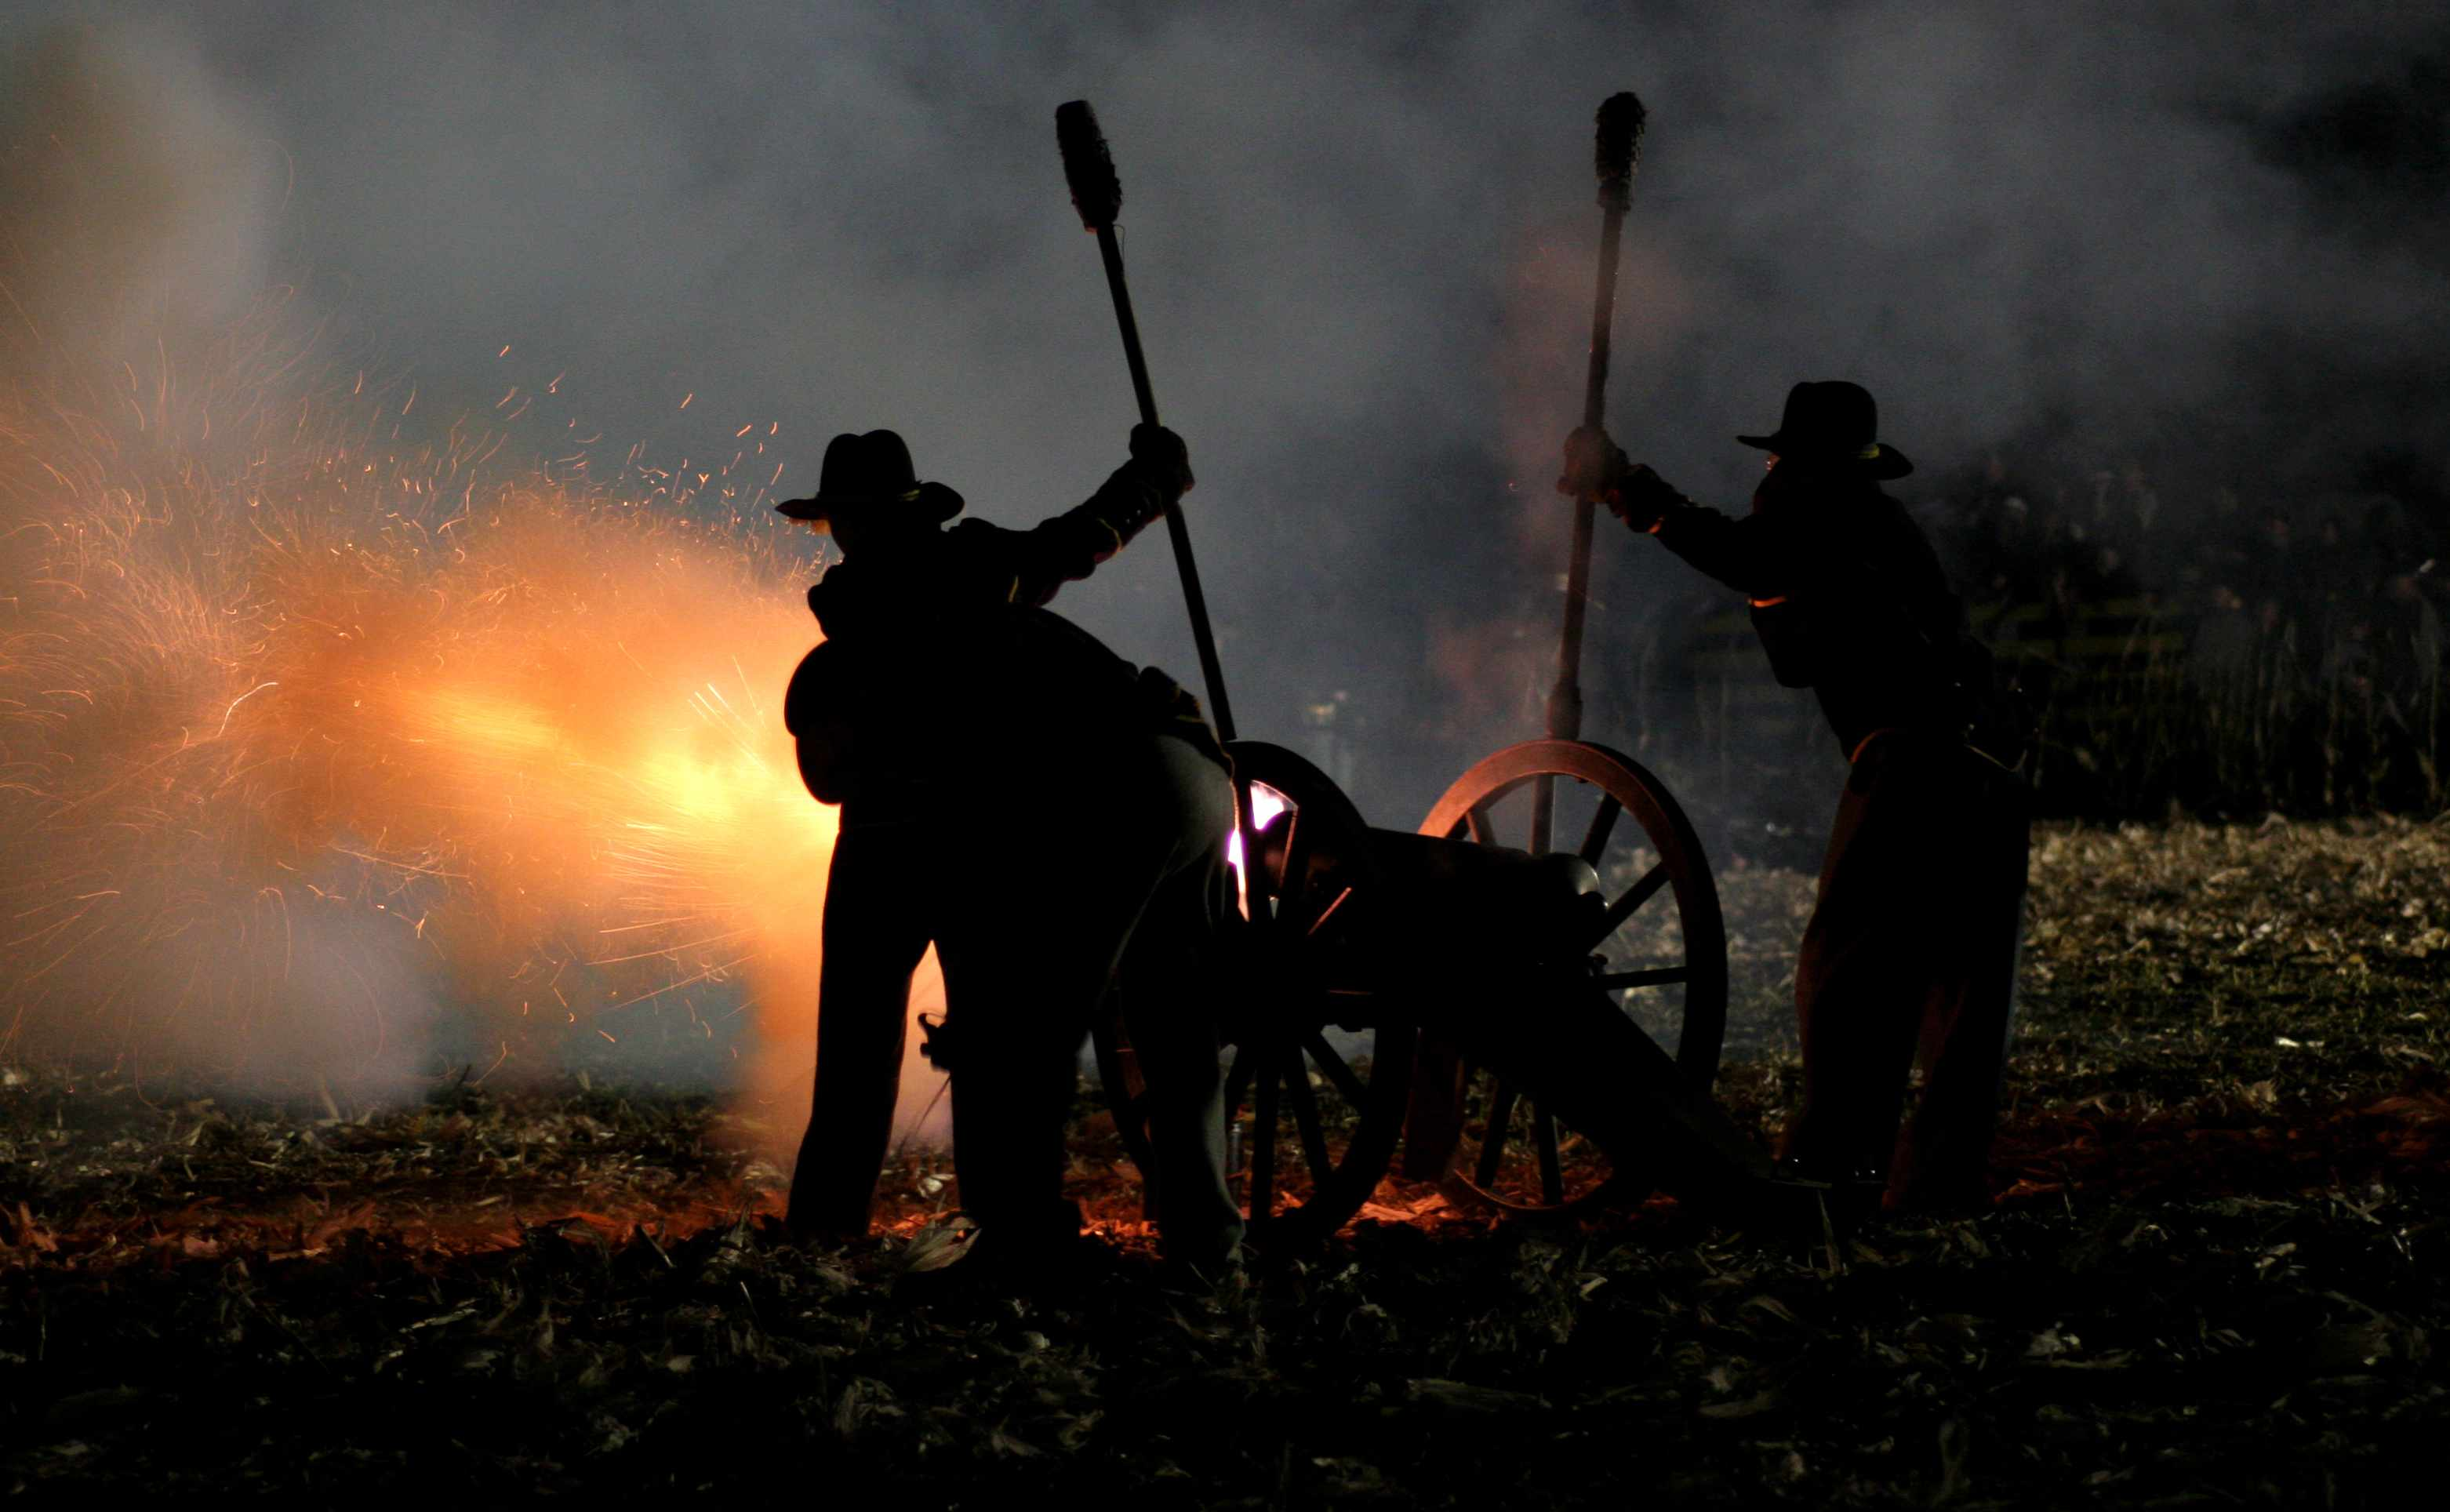 A re-enactment of the American Civil War. The conflict looms large in the US psyche 150 years after if began. (Getty Images)